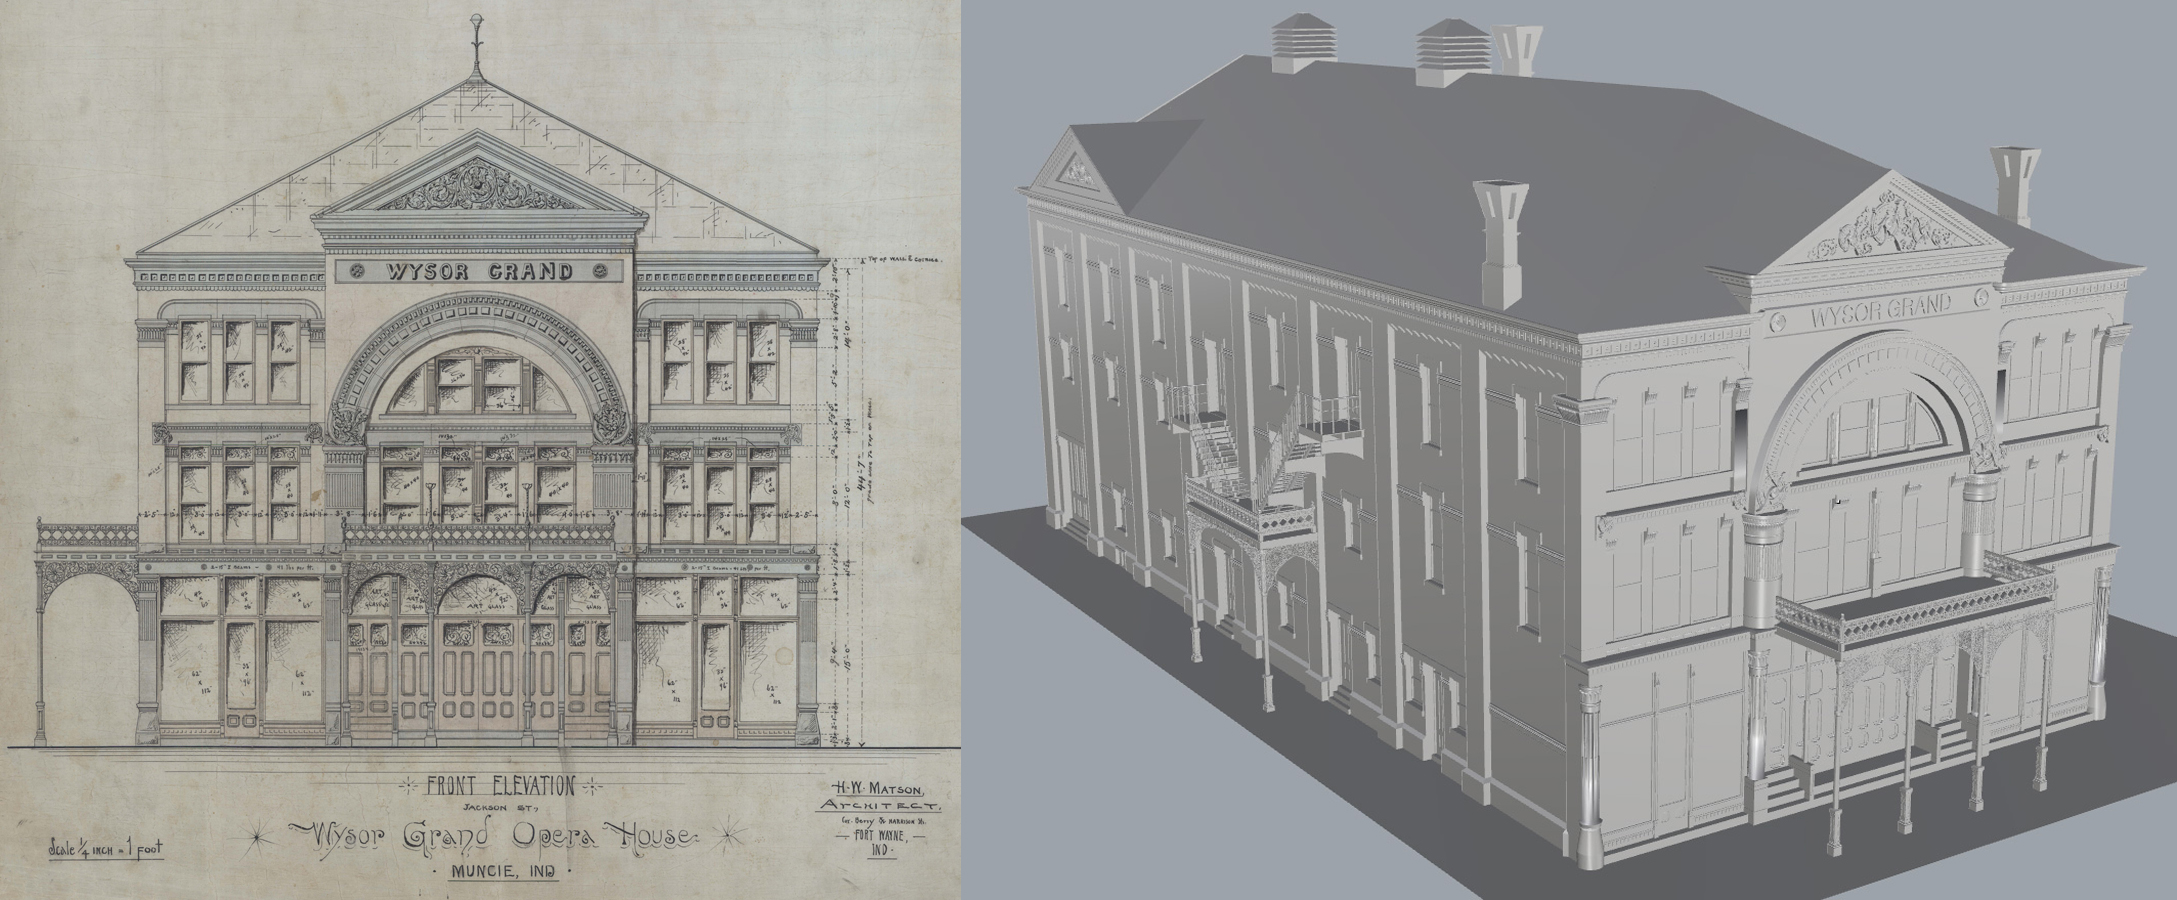 Wysor Grand Opera House 3D rendering (2014) and original drawing (1891). Indiana Architecture X 3D, Drawings + Documents Archive, Ball State University Libraries.